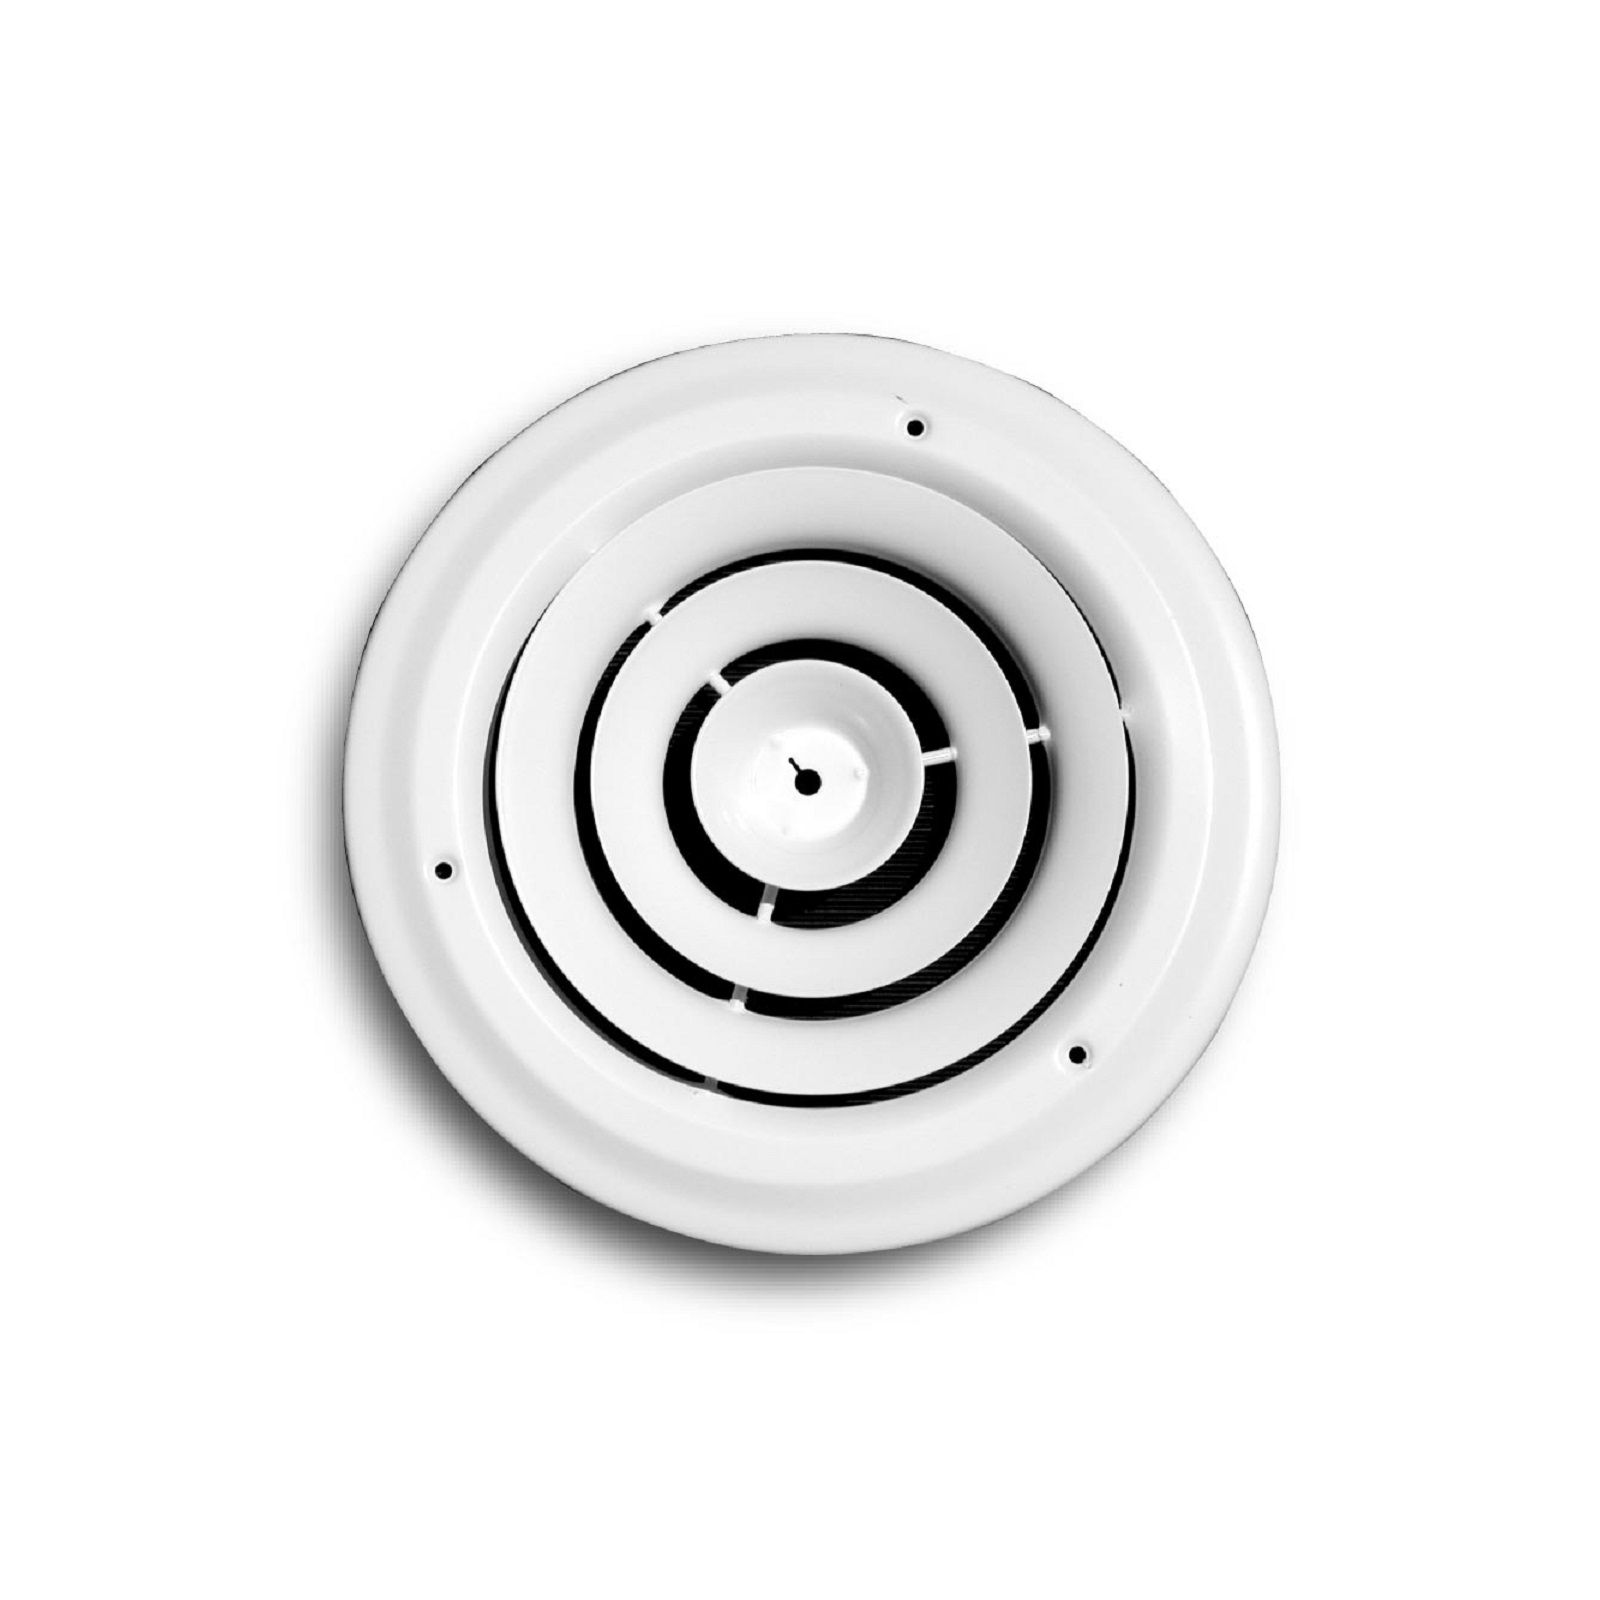 TRUaire 800-06 - Steel Round Ceiling Diffuser, White, 6""